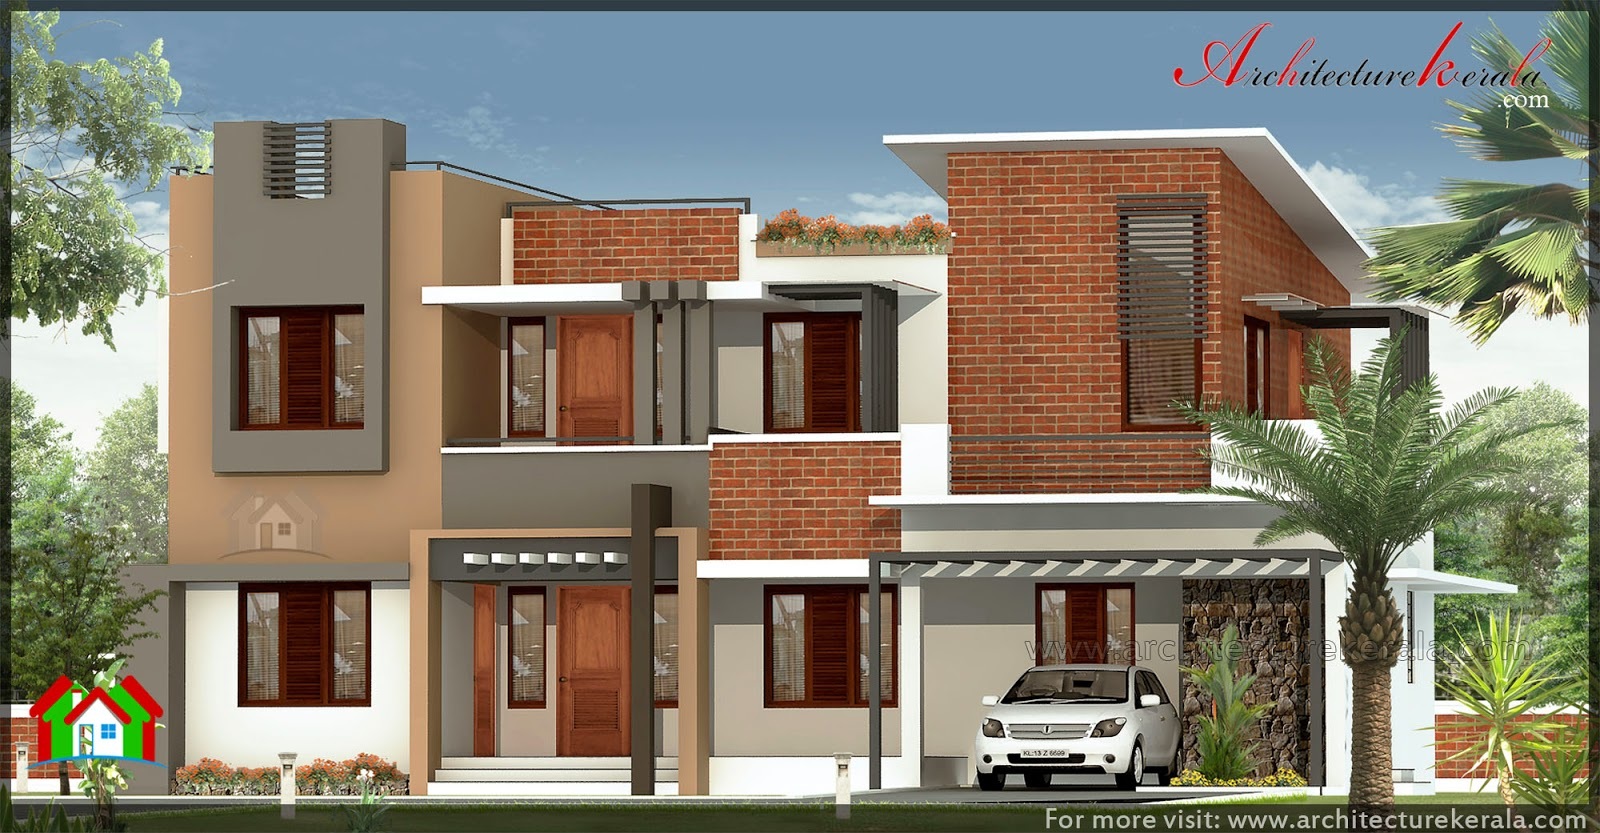 Traditional house plan with nadumuttam and poomukham for Big home designs